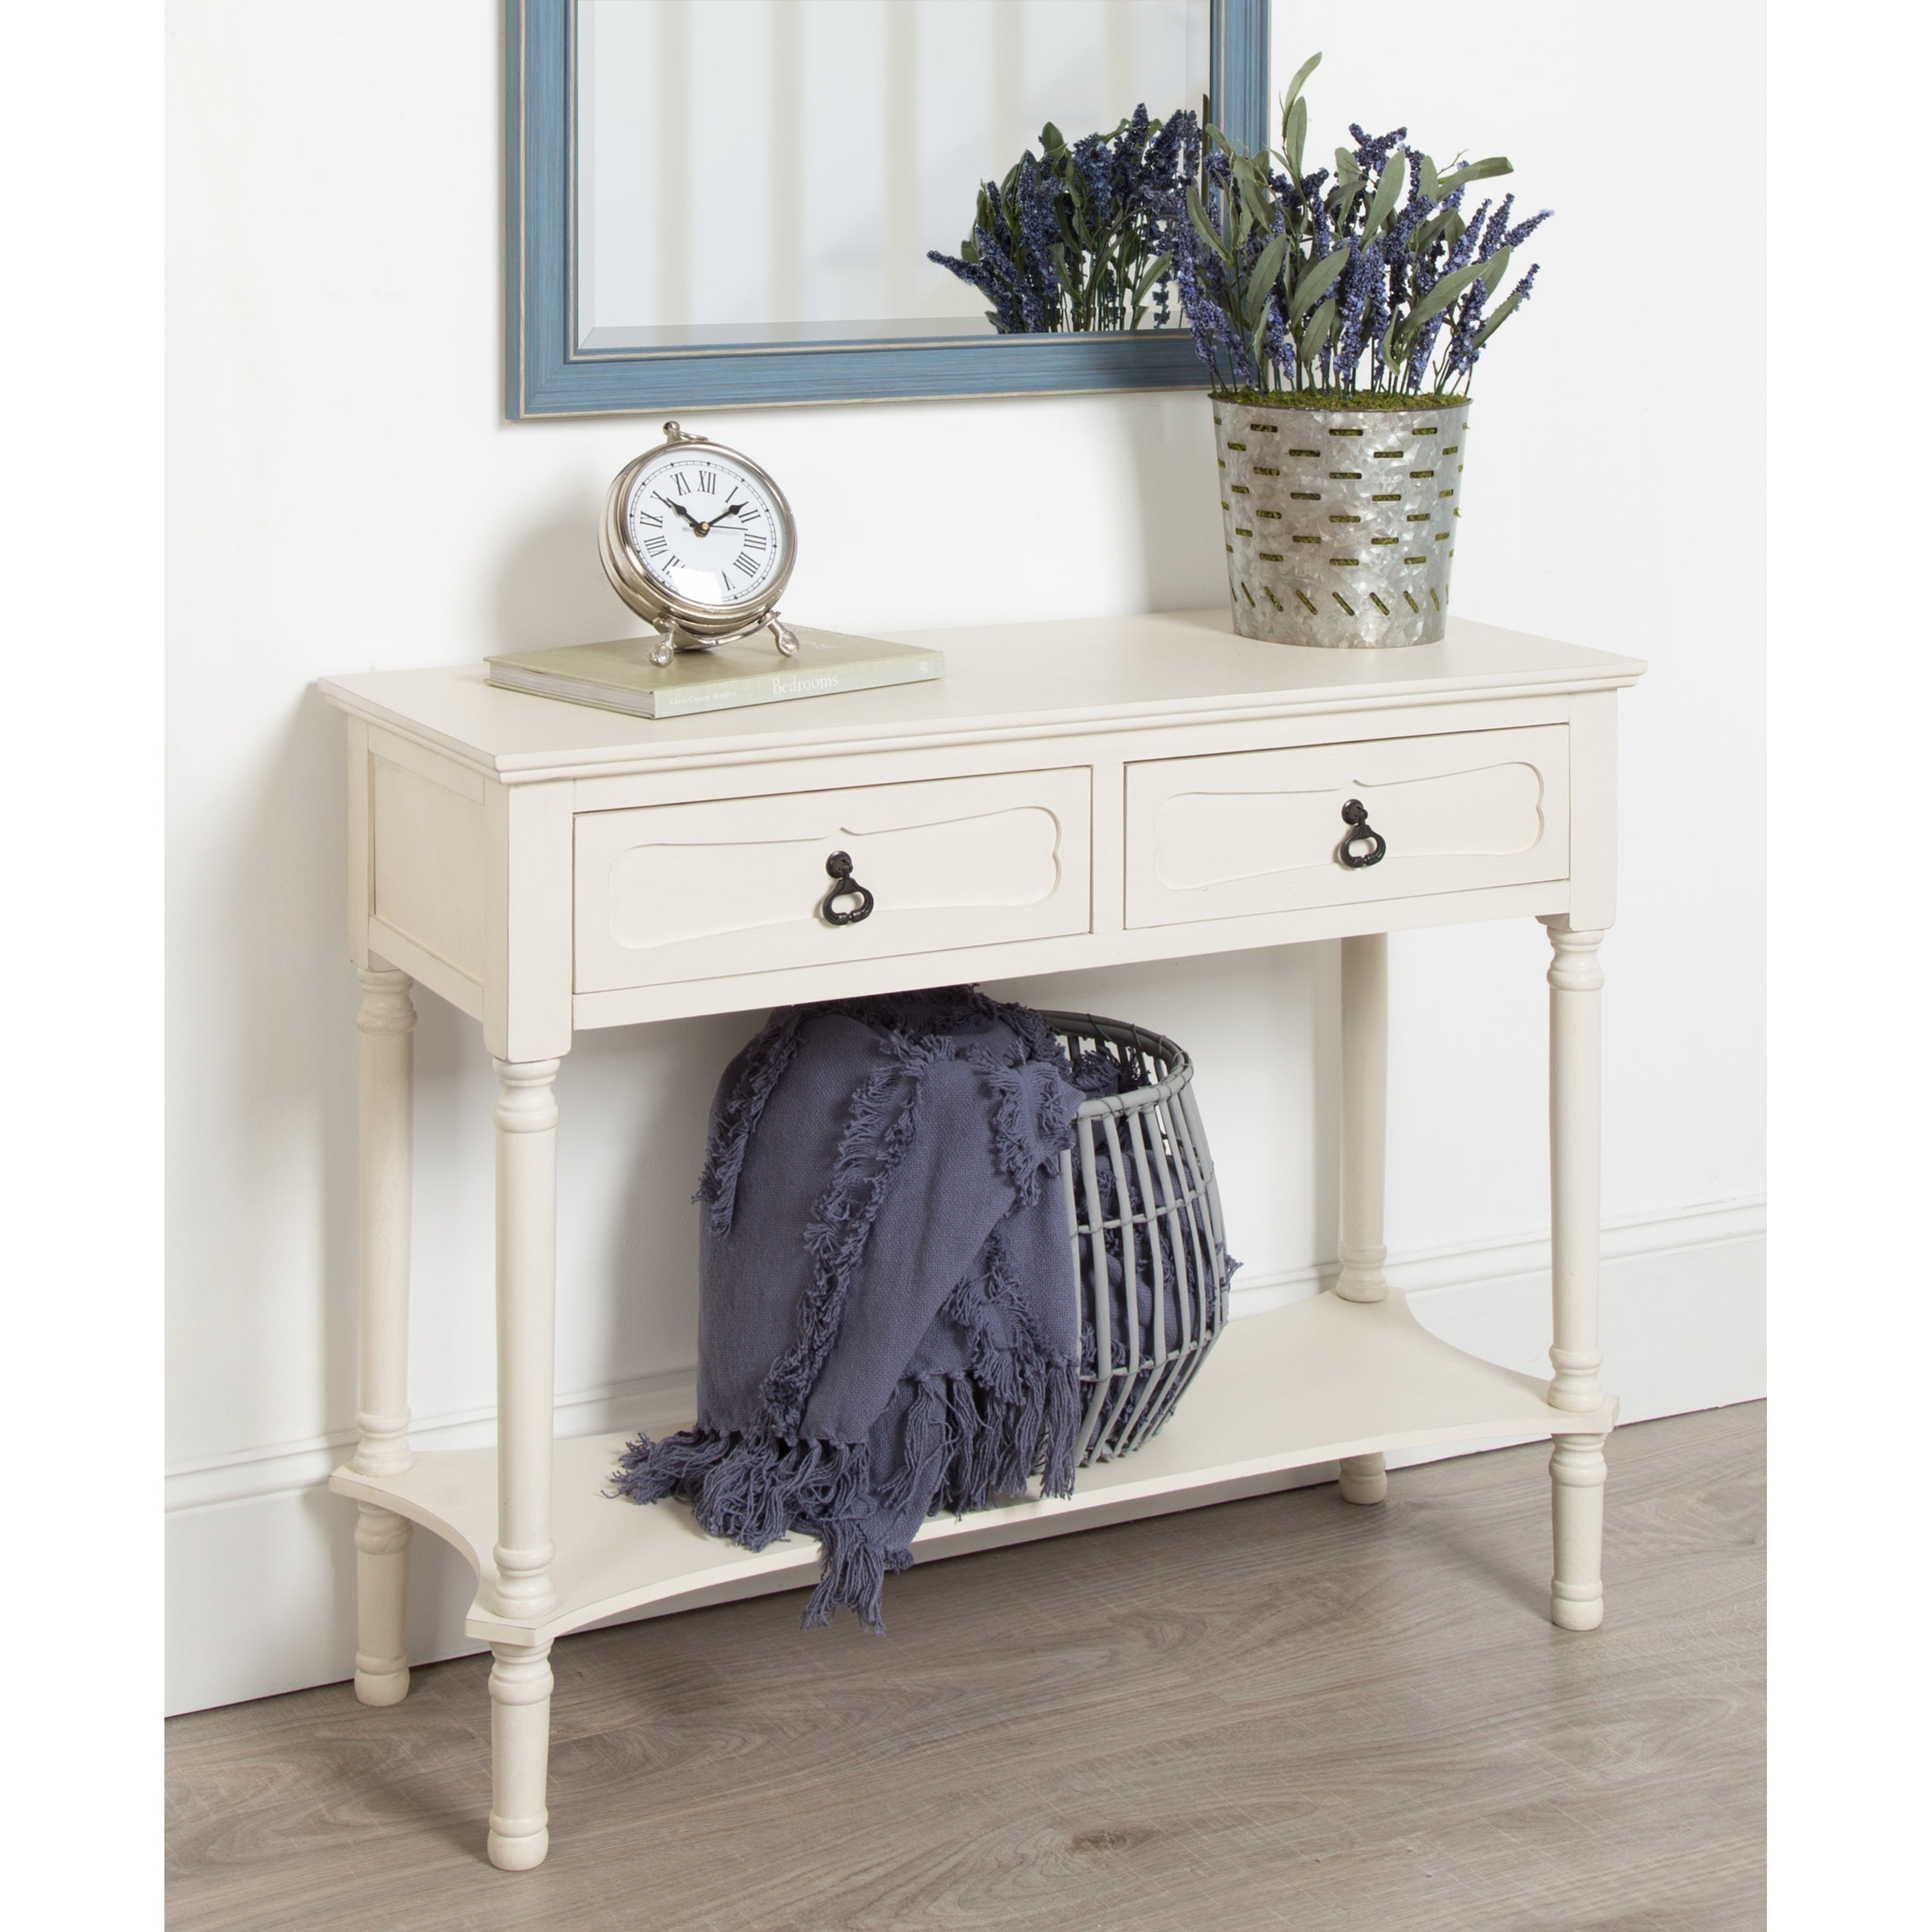 Marcella Wood Console Table With 2 Drawers And Shelf Antique White On Free Shipping Today 21474232